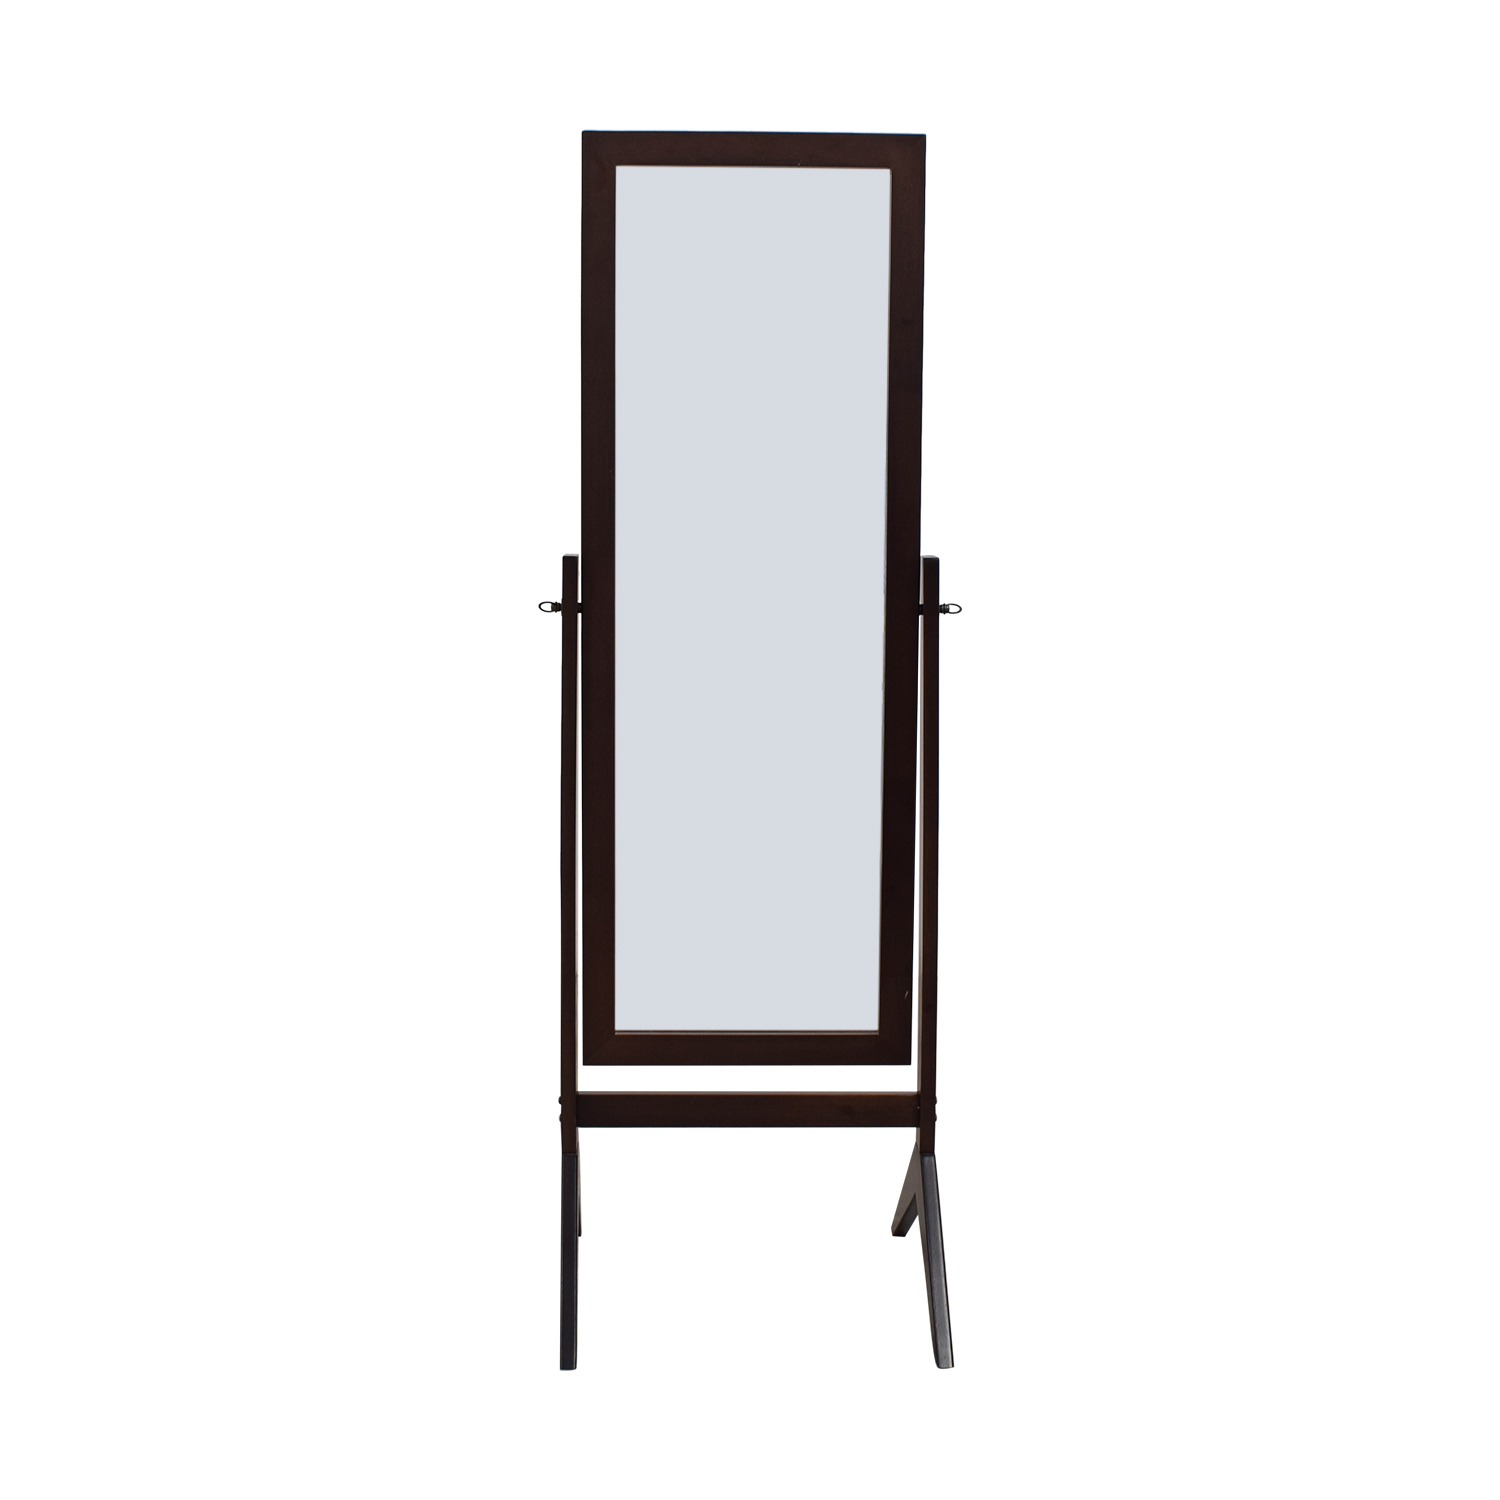 Bed Bath & Beyond Bed Bath & Beyond Brown Cheval Floor Mirror nyc